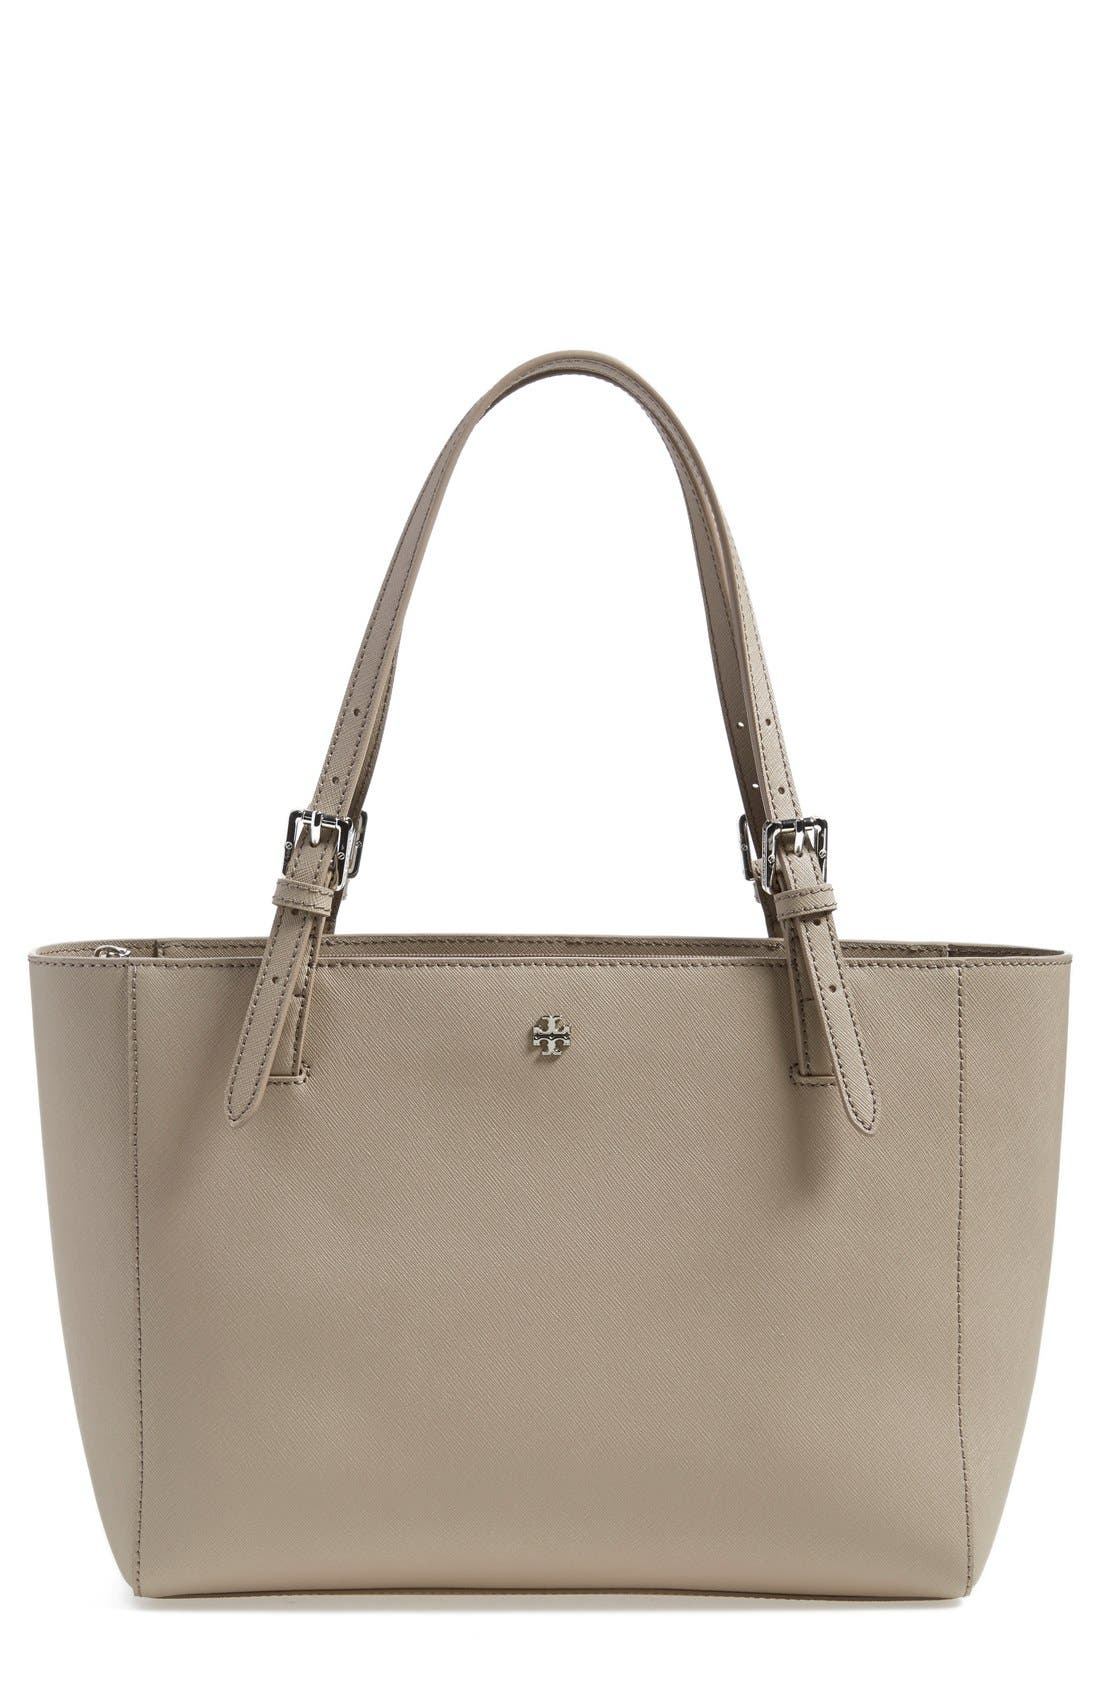 'Small York' Saffiano Leather Buckle Tote,                             Main thumbnail 1, color,